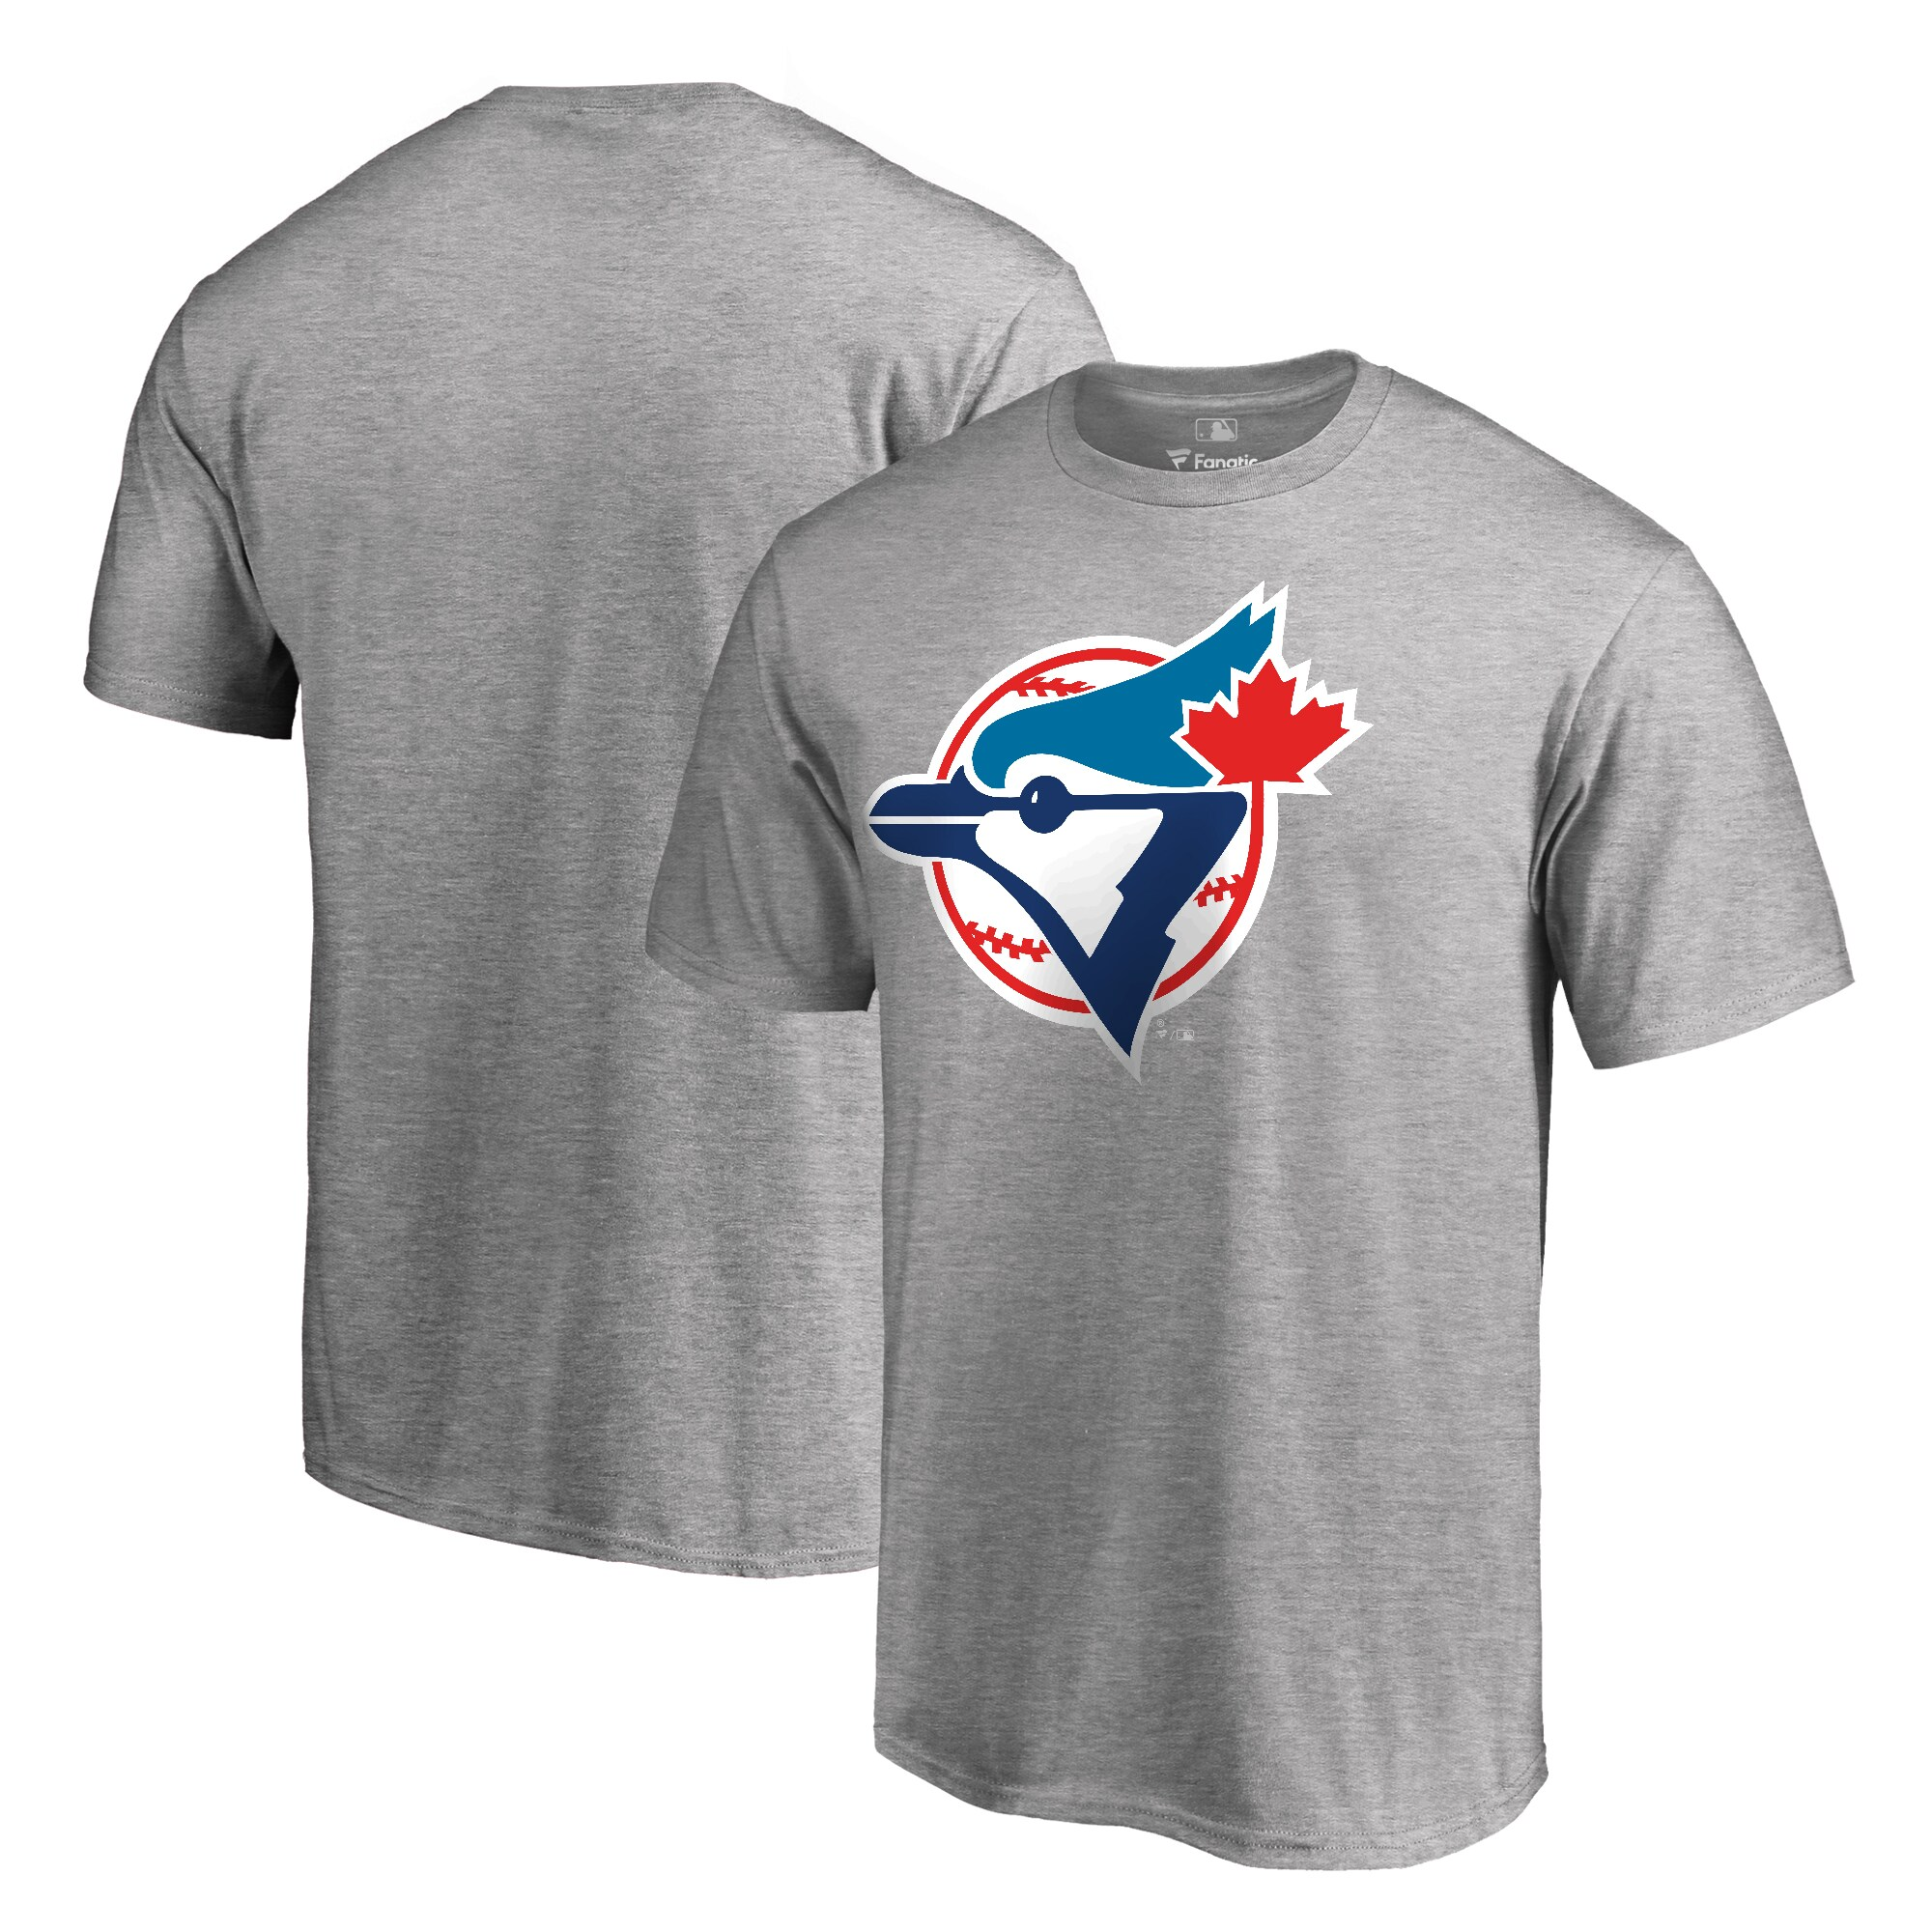 Toronto Blue Jays Fanatics Branded Cooperstown Collection Forbes T-Shirt - Ash